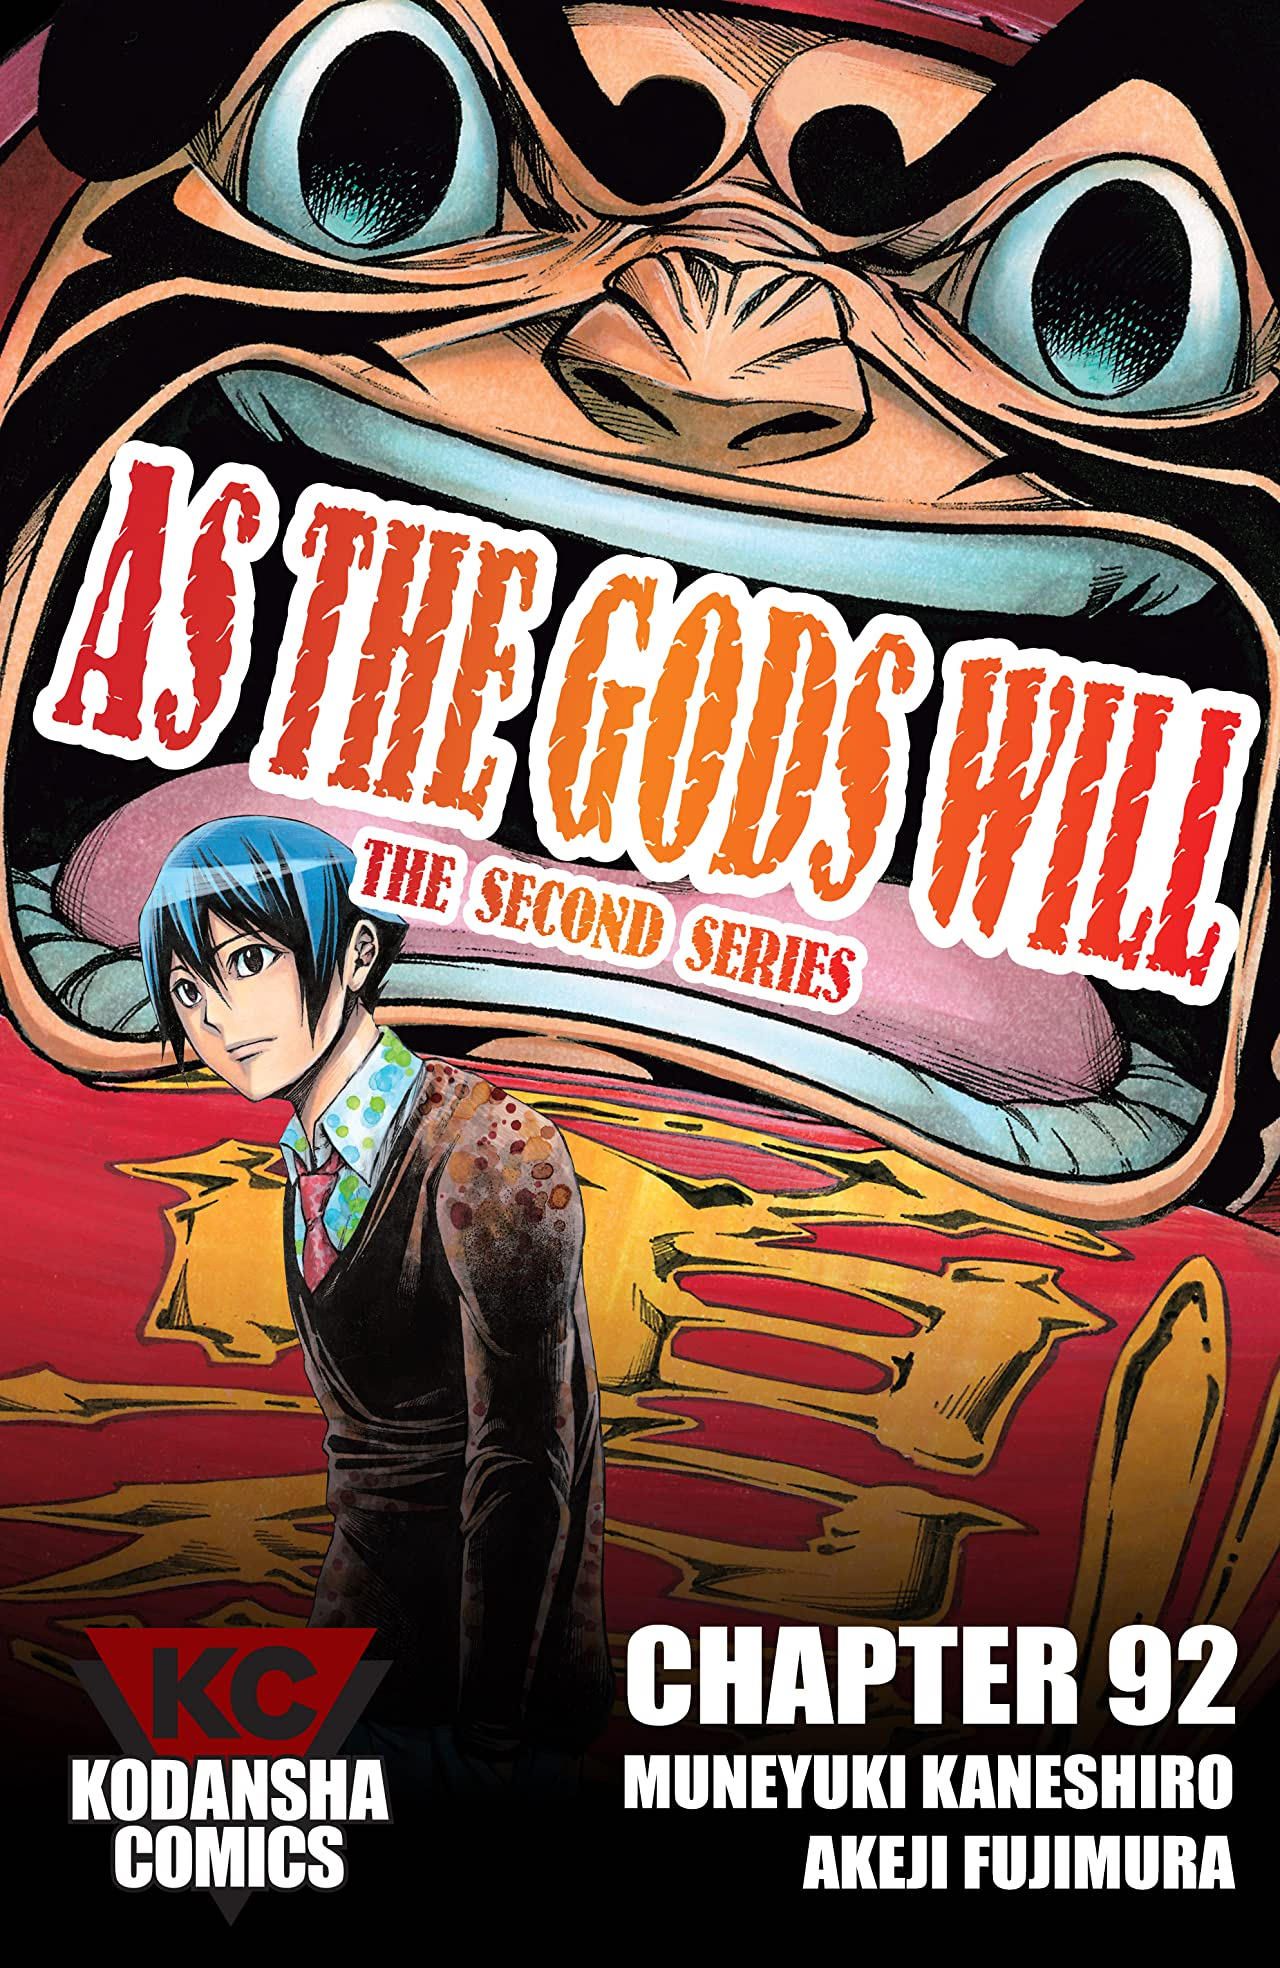 As The Gods Will: The Second Series #92